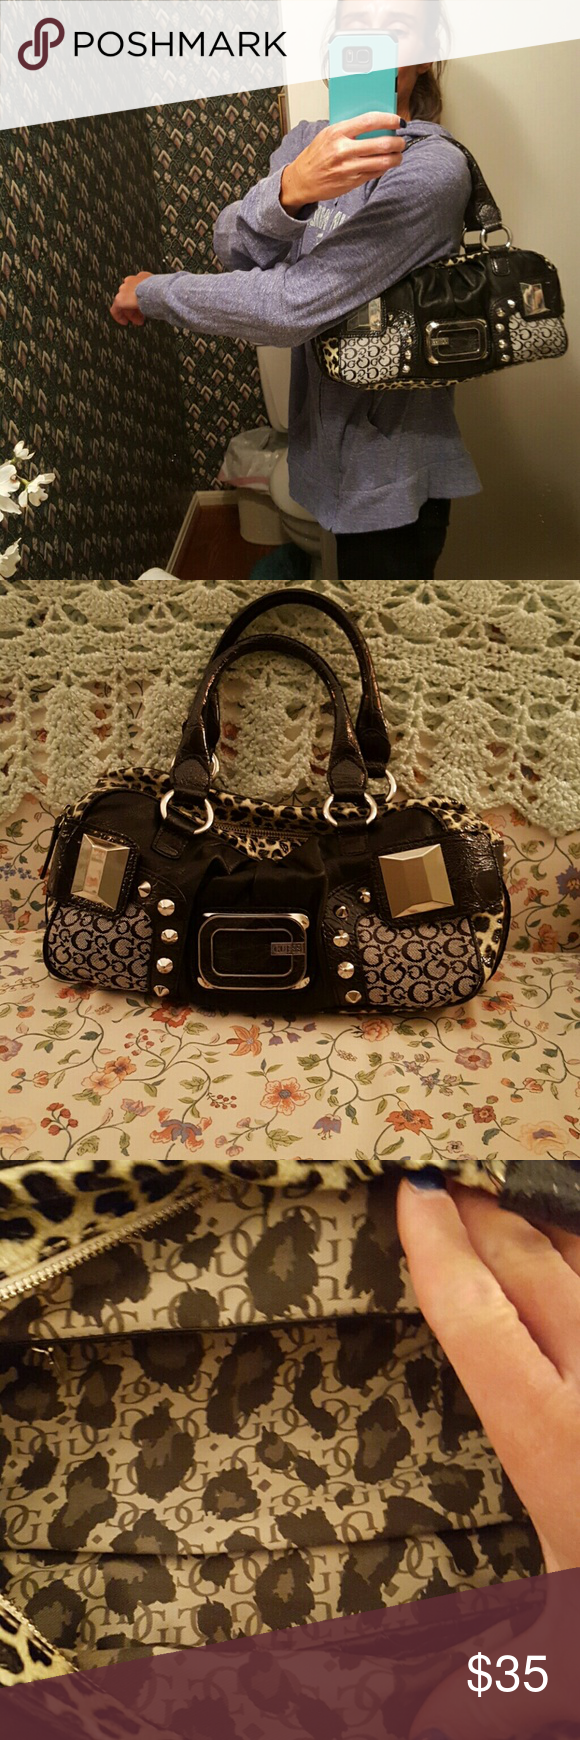 Authentic Guess purse BNWOT Authentic Guess purse. Inside is incredibly spacious with 2 open pockets and 1 zip pocket. Zip closure. Guess Bags Shoulder Bags